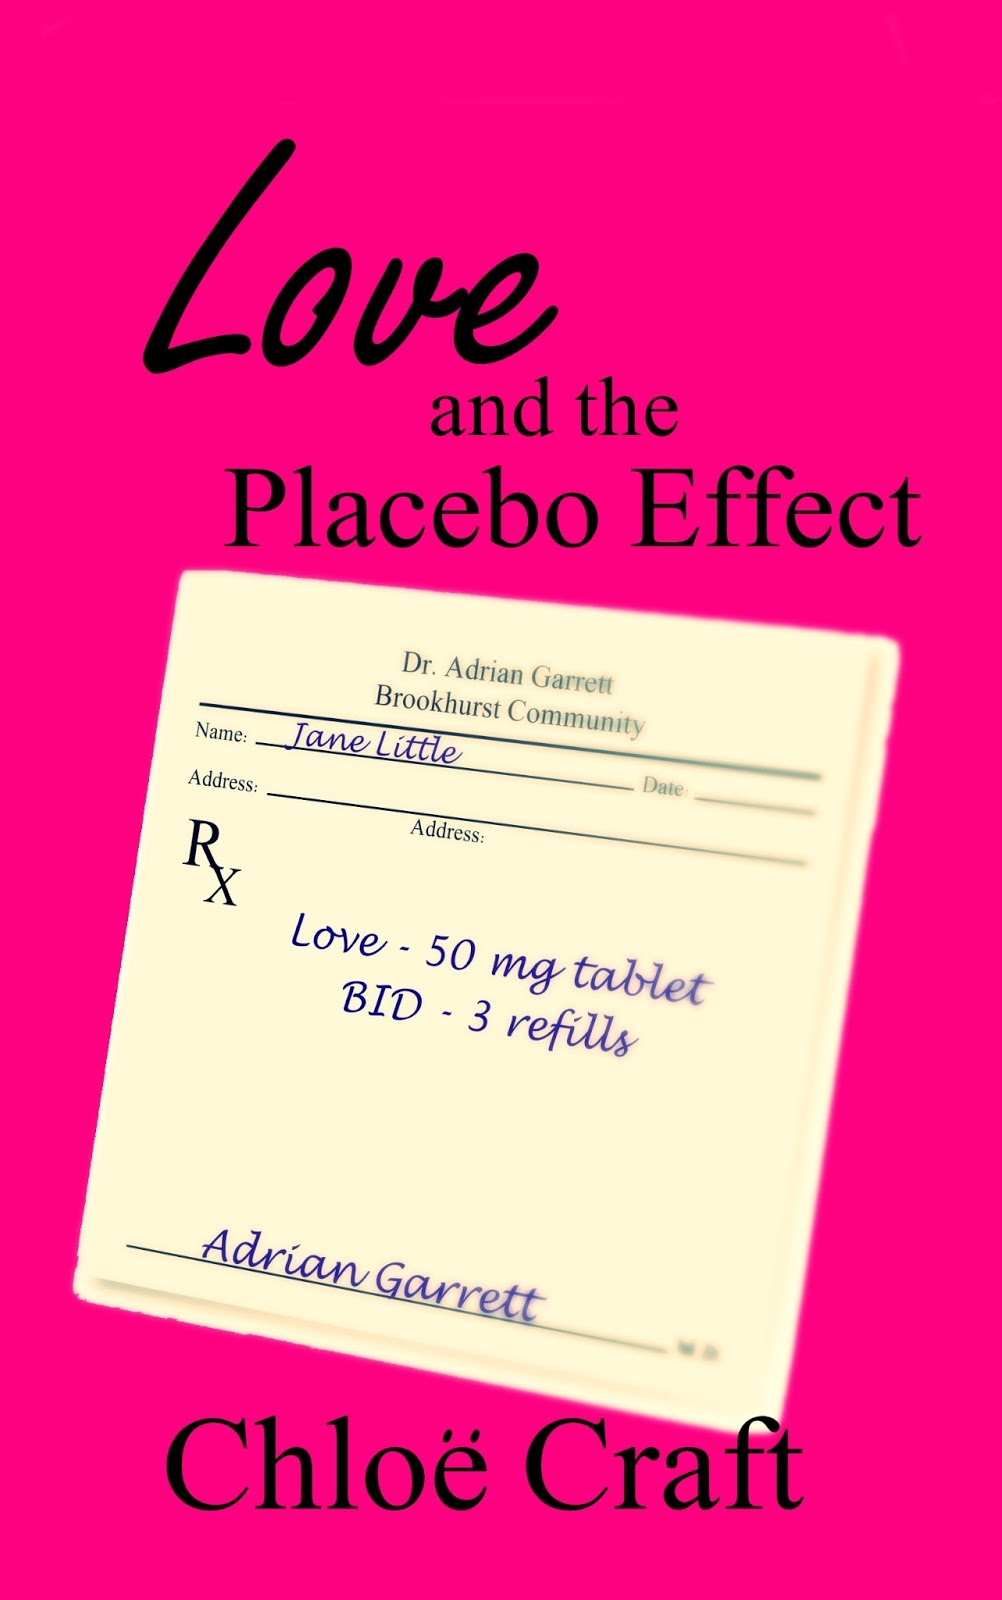 placebo effect essay Read the full essay » wray herbert: is the placebo effect dangerous physician  and medical gadfly ben goldacre is well known for his.